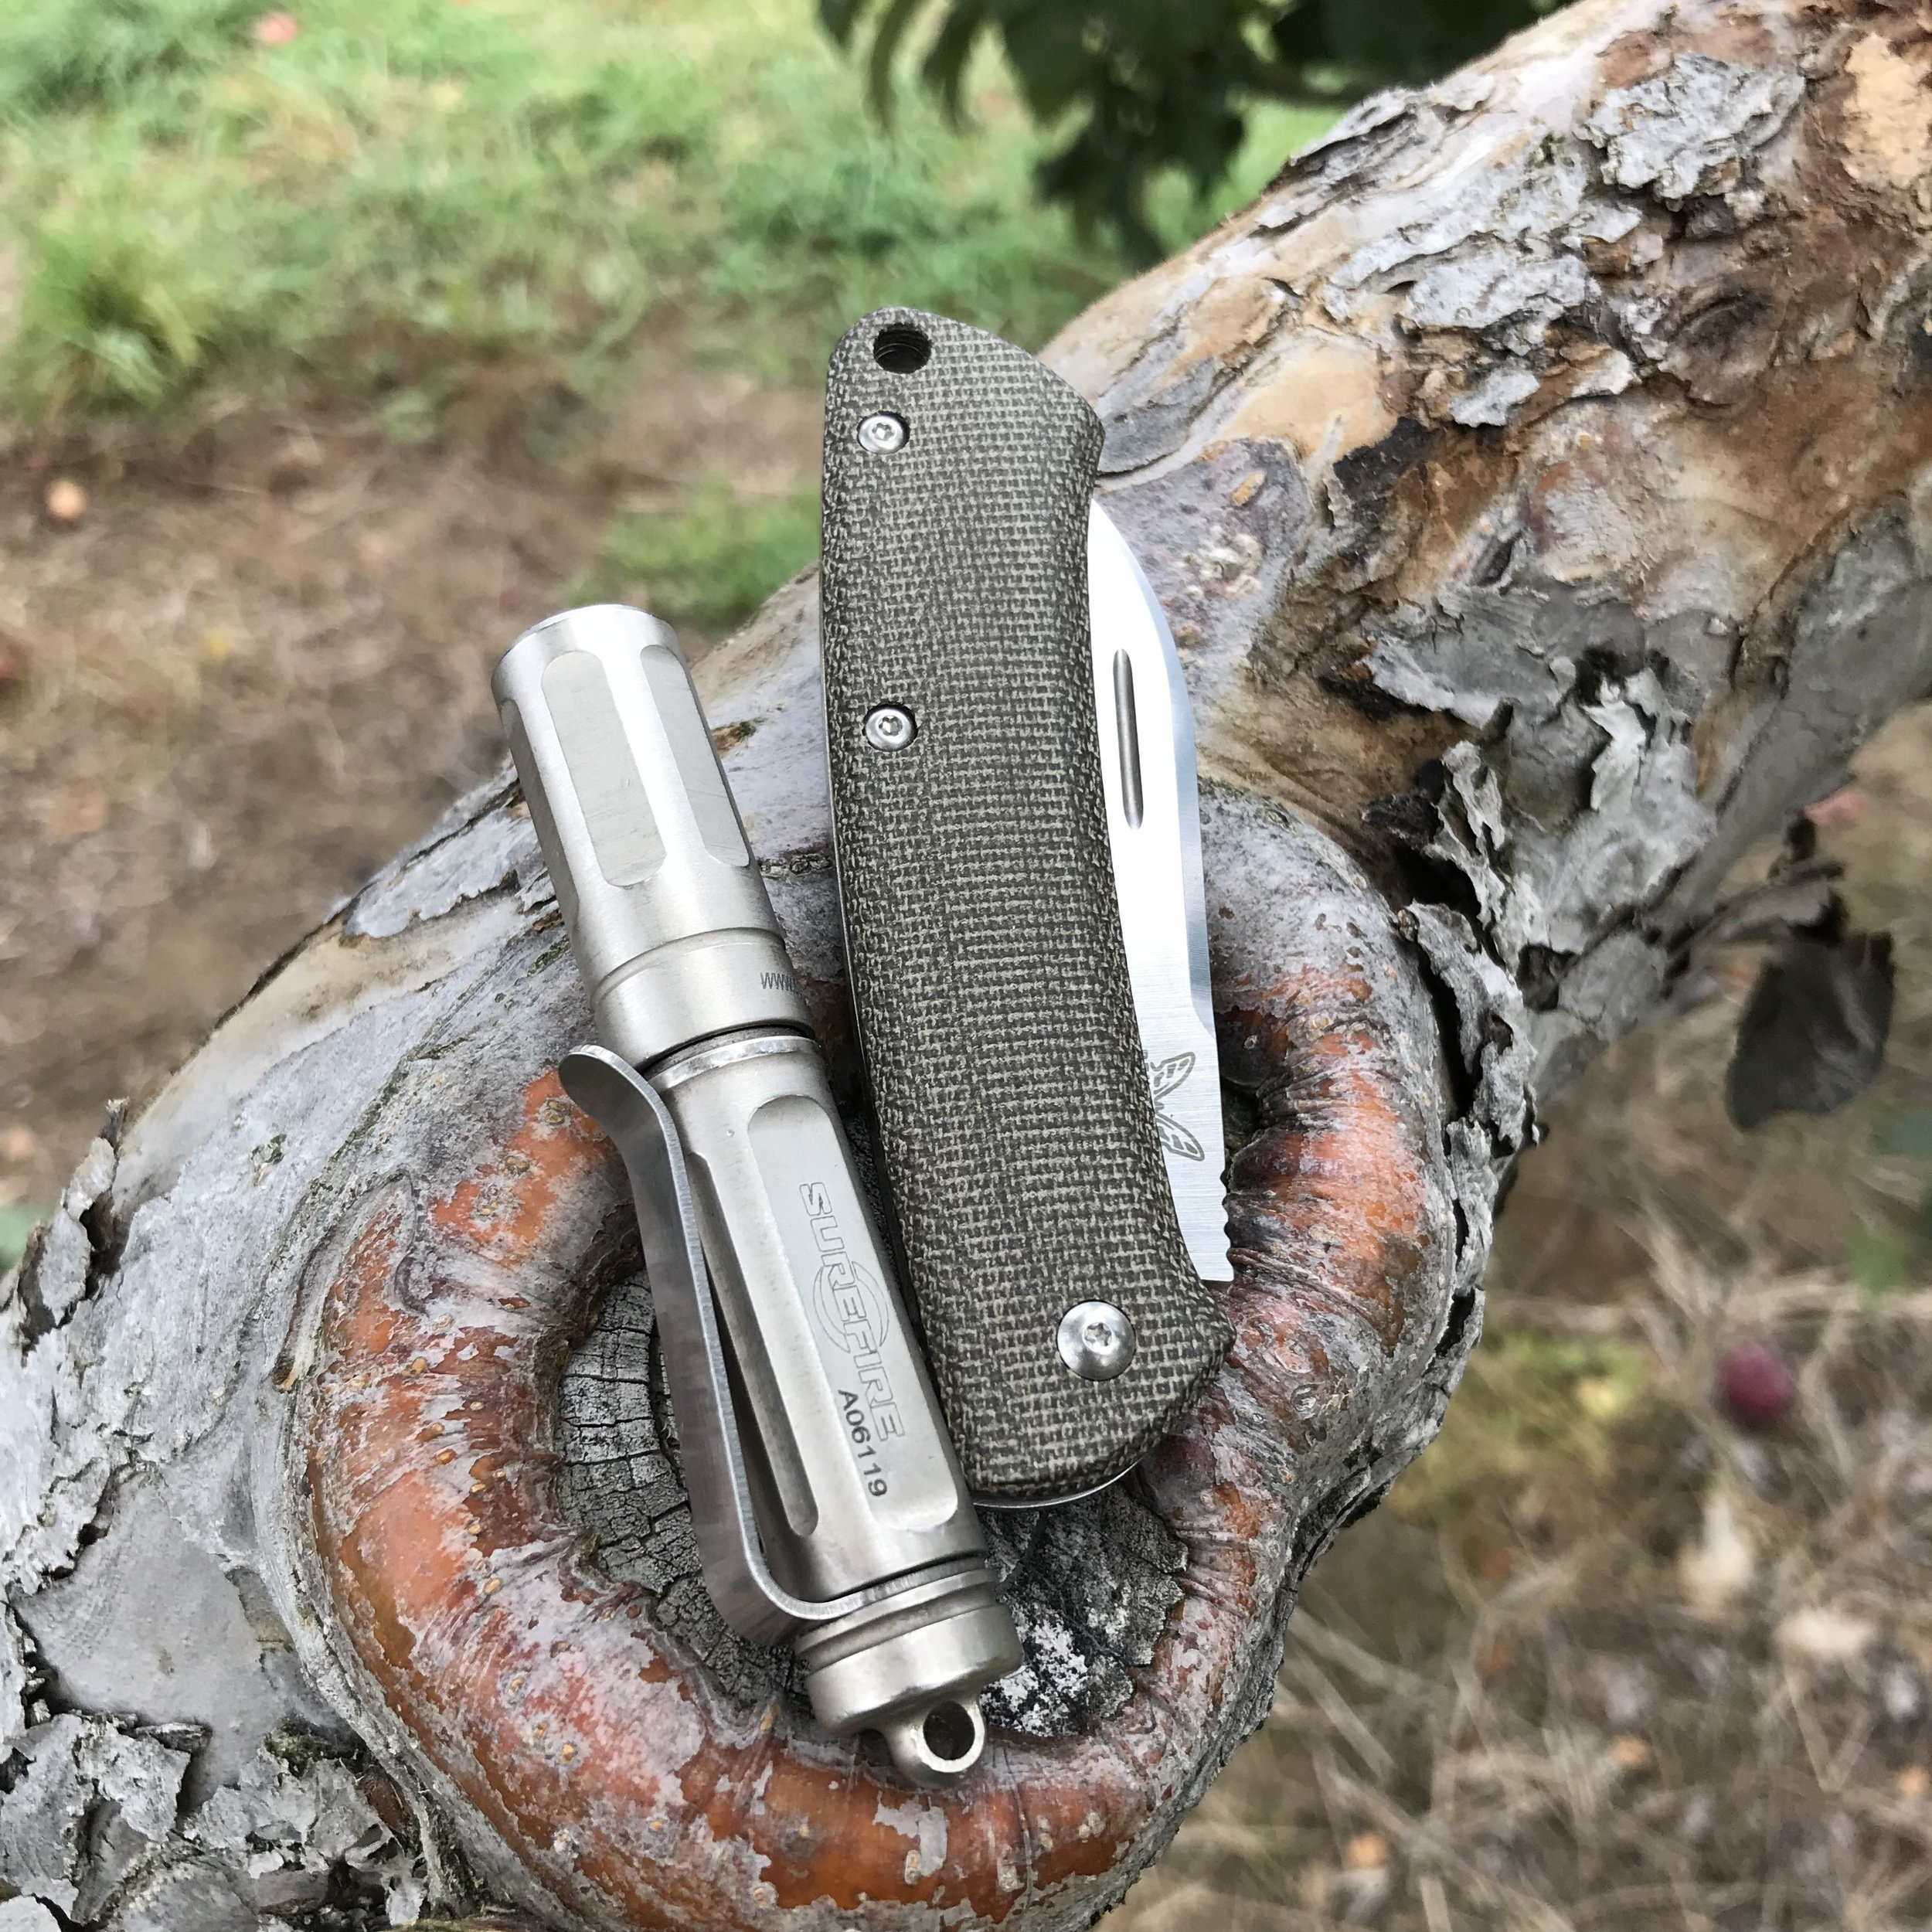 The Surefire Titan Plus with the Benchmade Proper